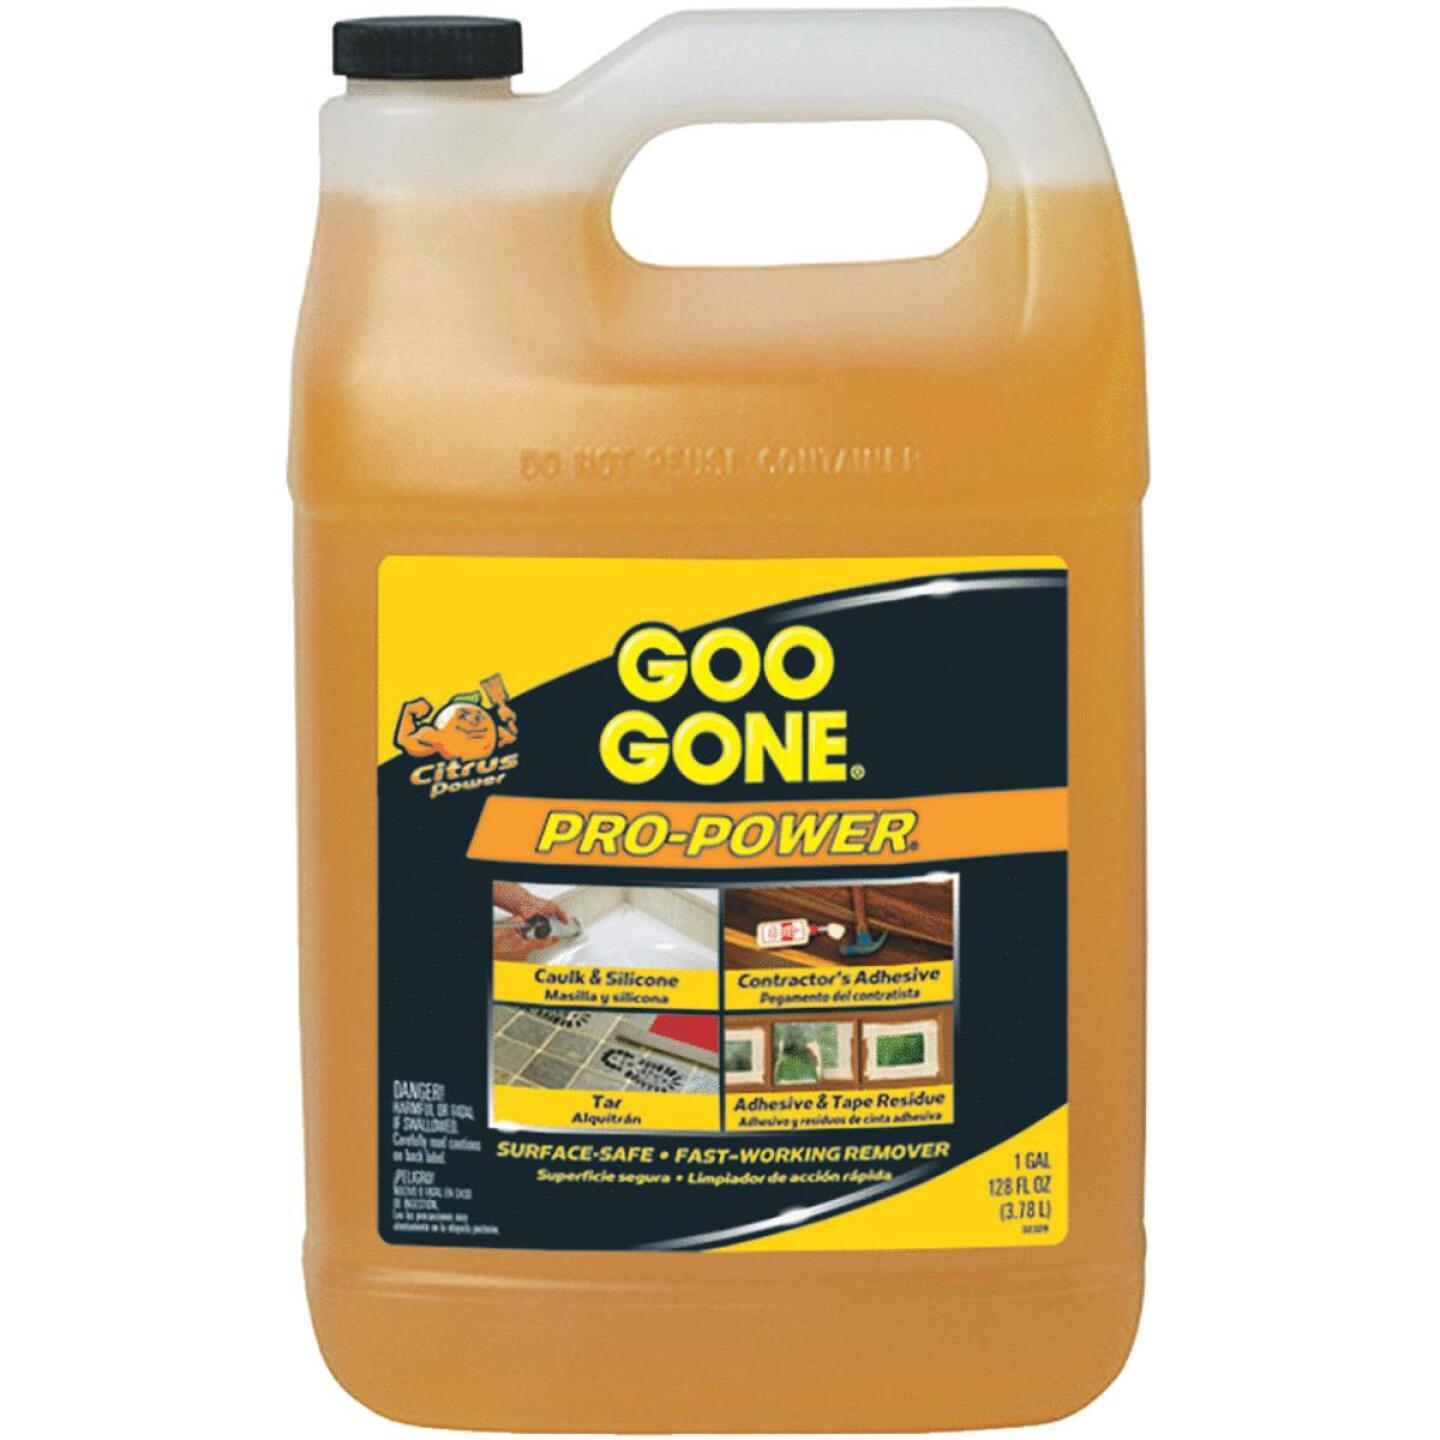 Goo Gone 1 Gal. Pro-Power Adhesive Remover Image 15